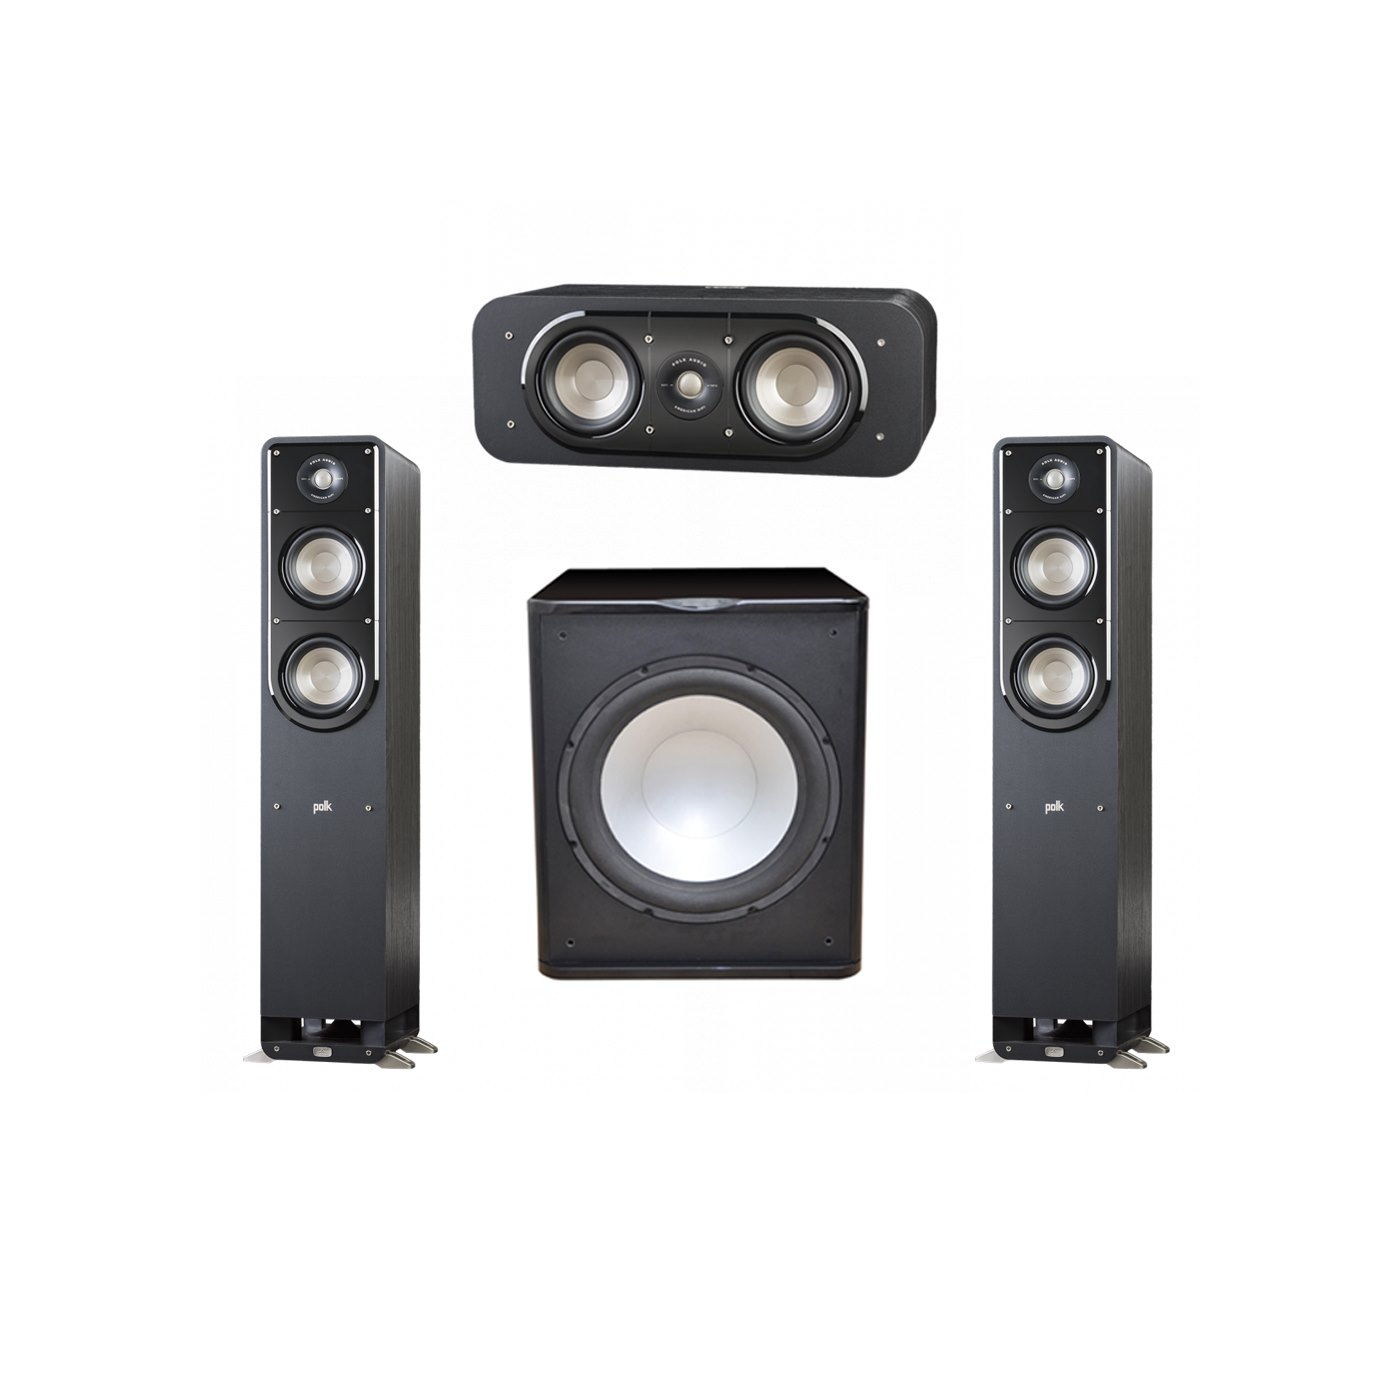 Polk Audio Signature 3.1 System with 2 S50 Tower Speaker, 1 Polk S30 Center Speaker, 1 Premier Acoustic PA-150 Powered Subwoofer